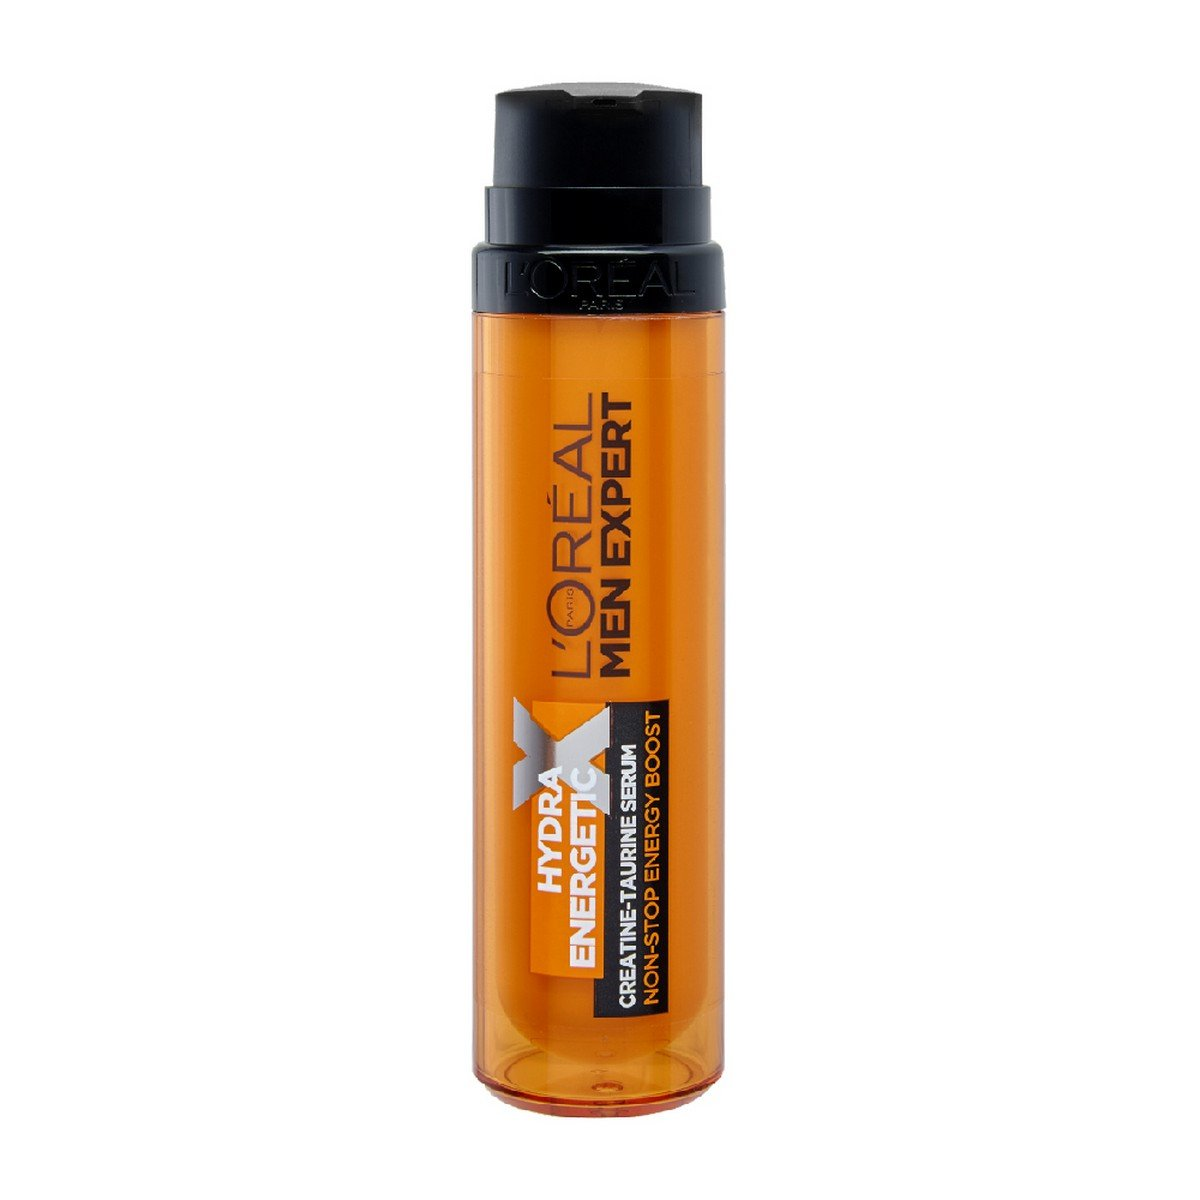 L'Oreal Paris Men Expert Hydra Energetic Turbo Booster